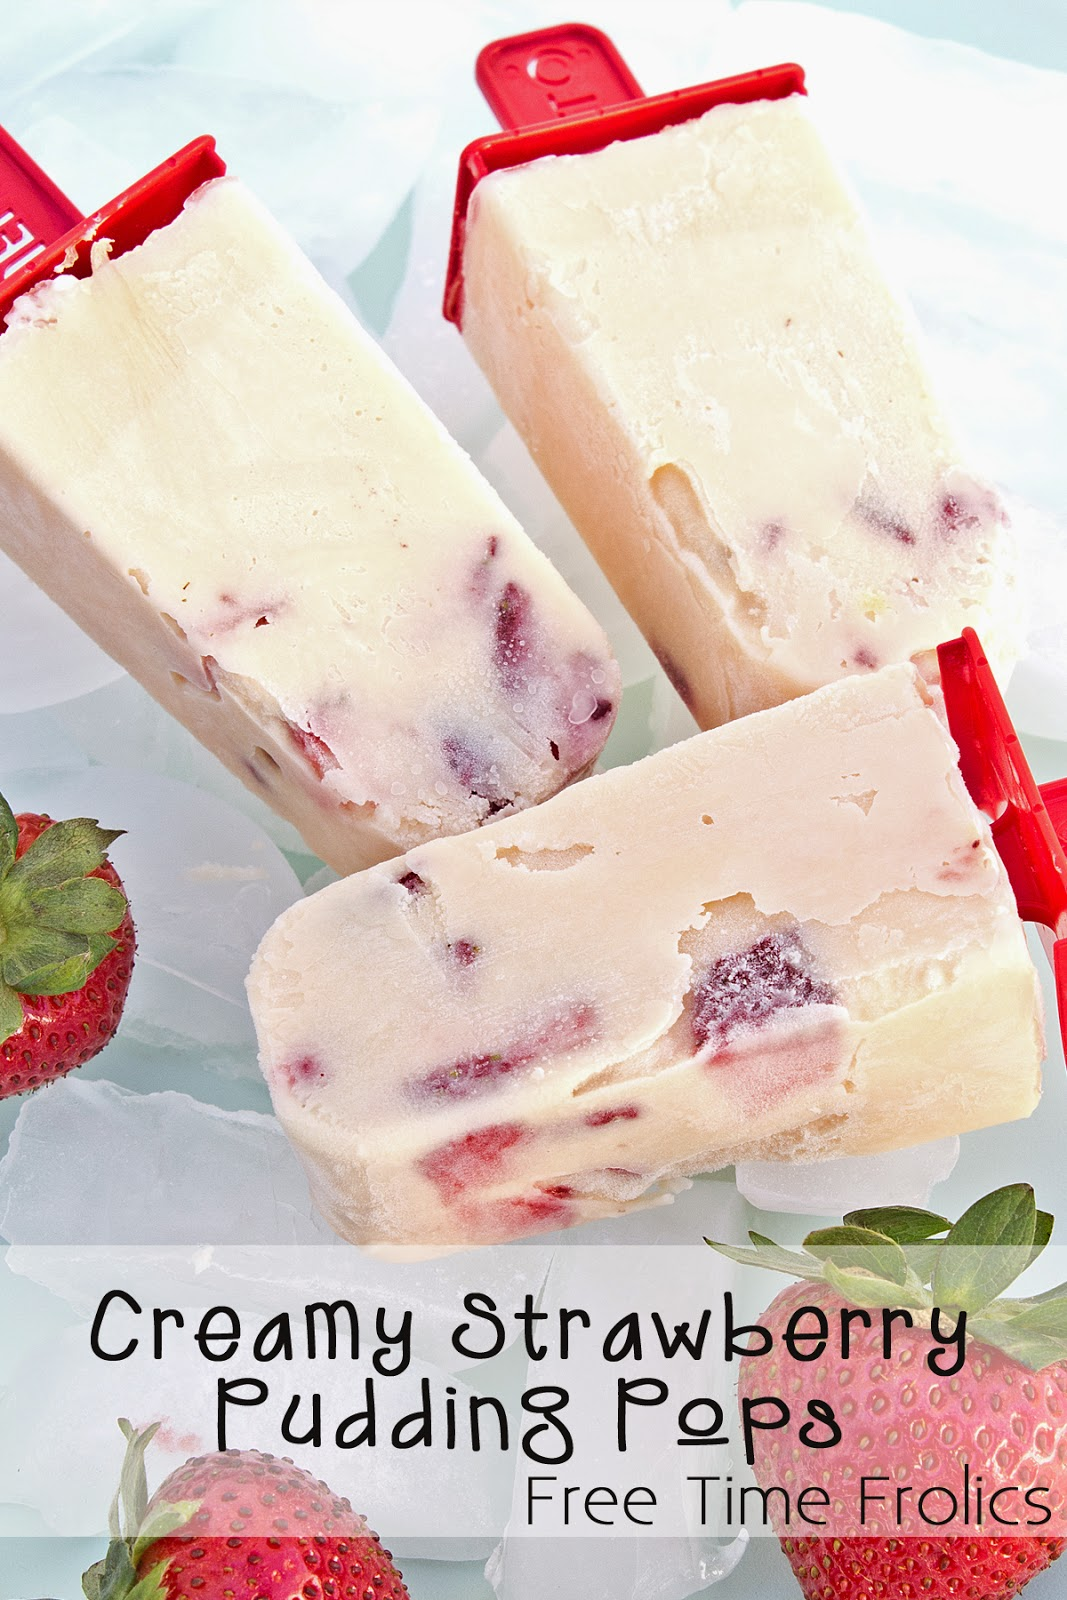 Strawberry Pudding Pops